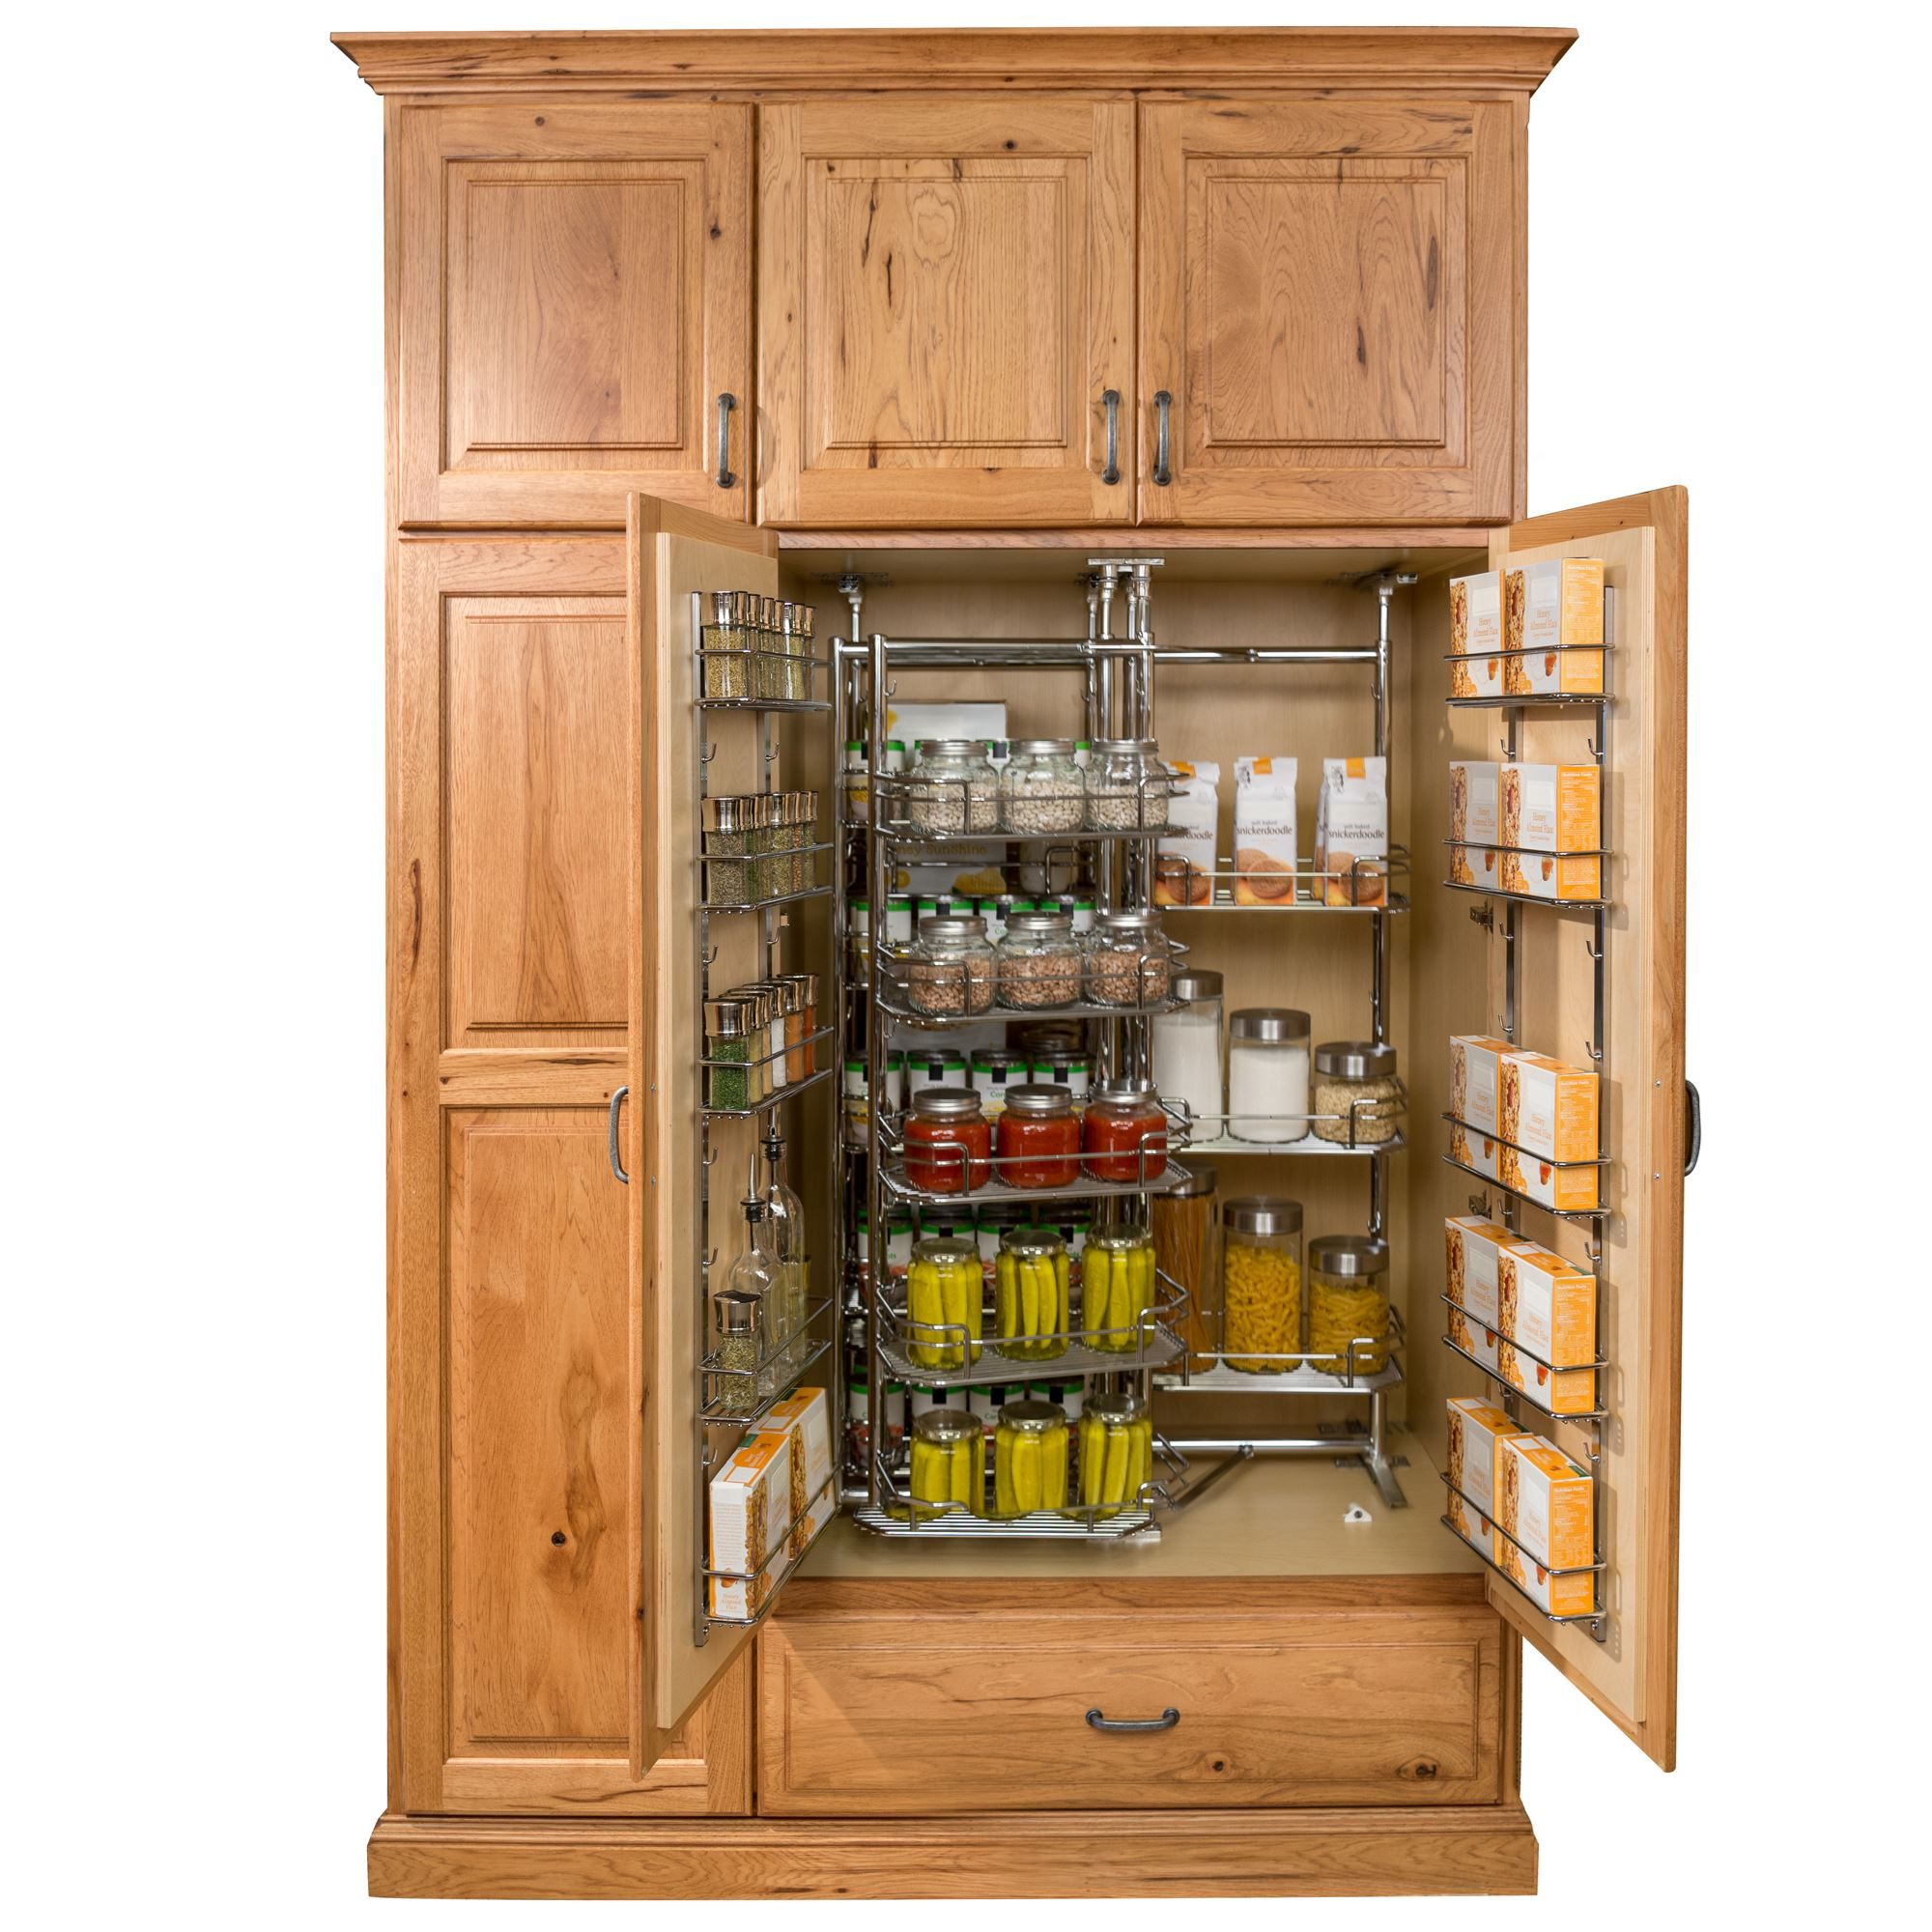 Pantry Cabinet: Food Storage Pantry Cabinet with Pantry and Food ...